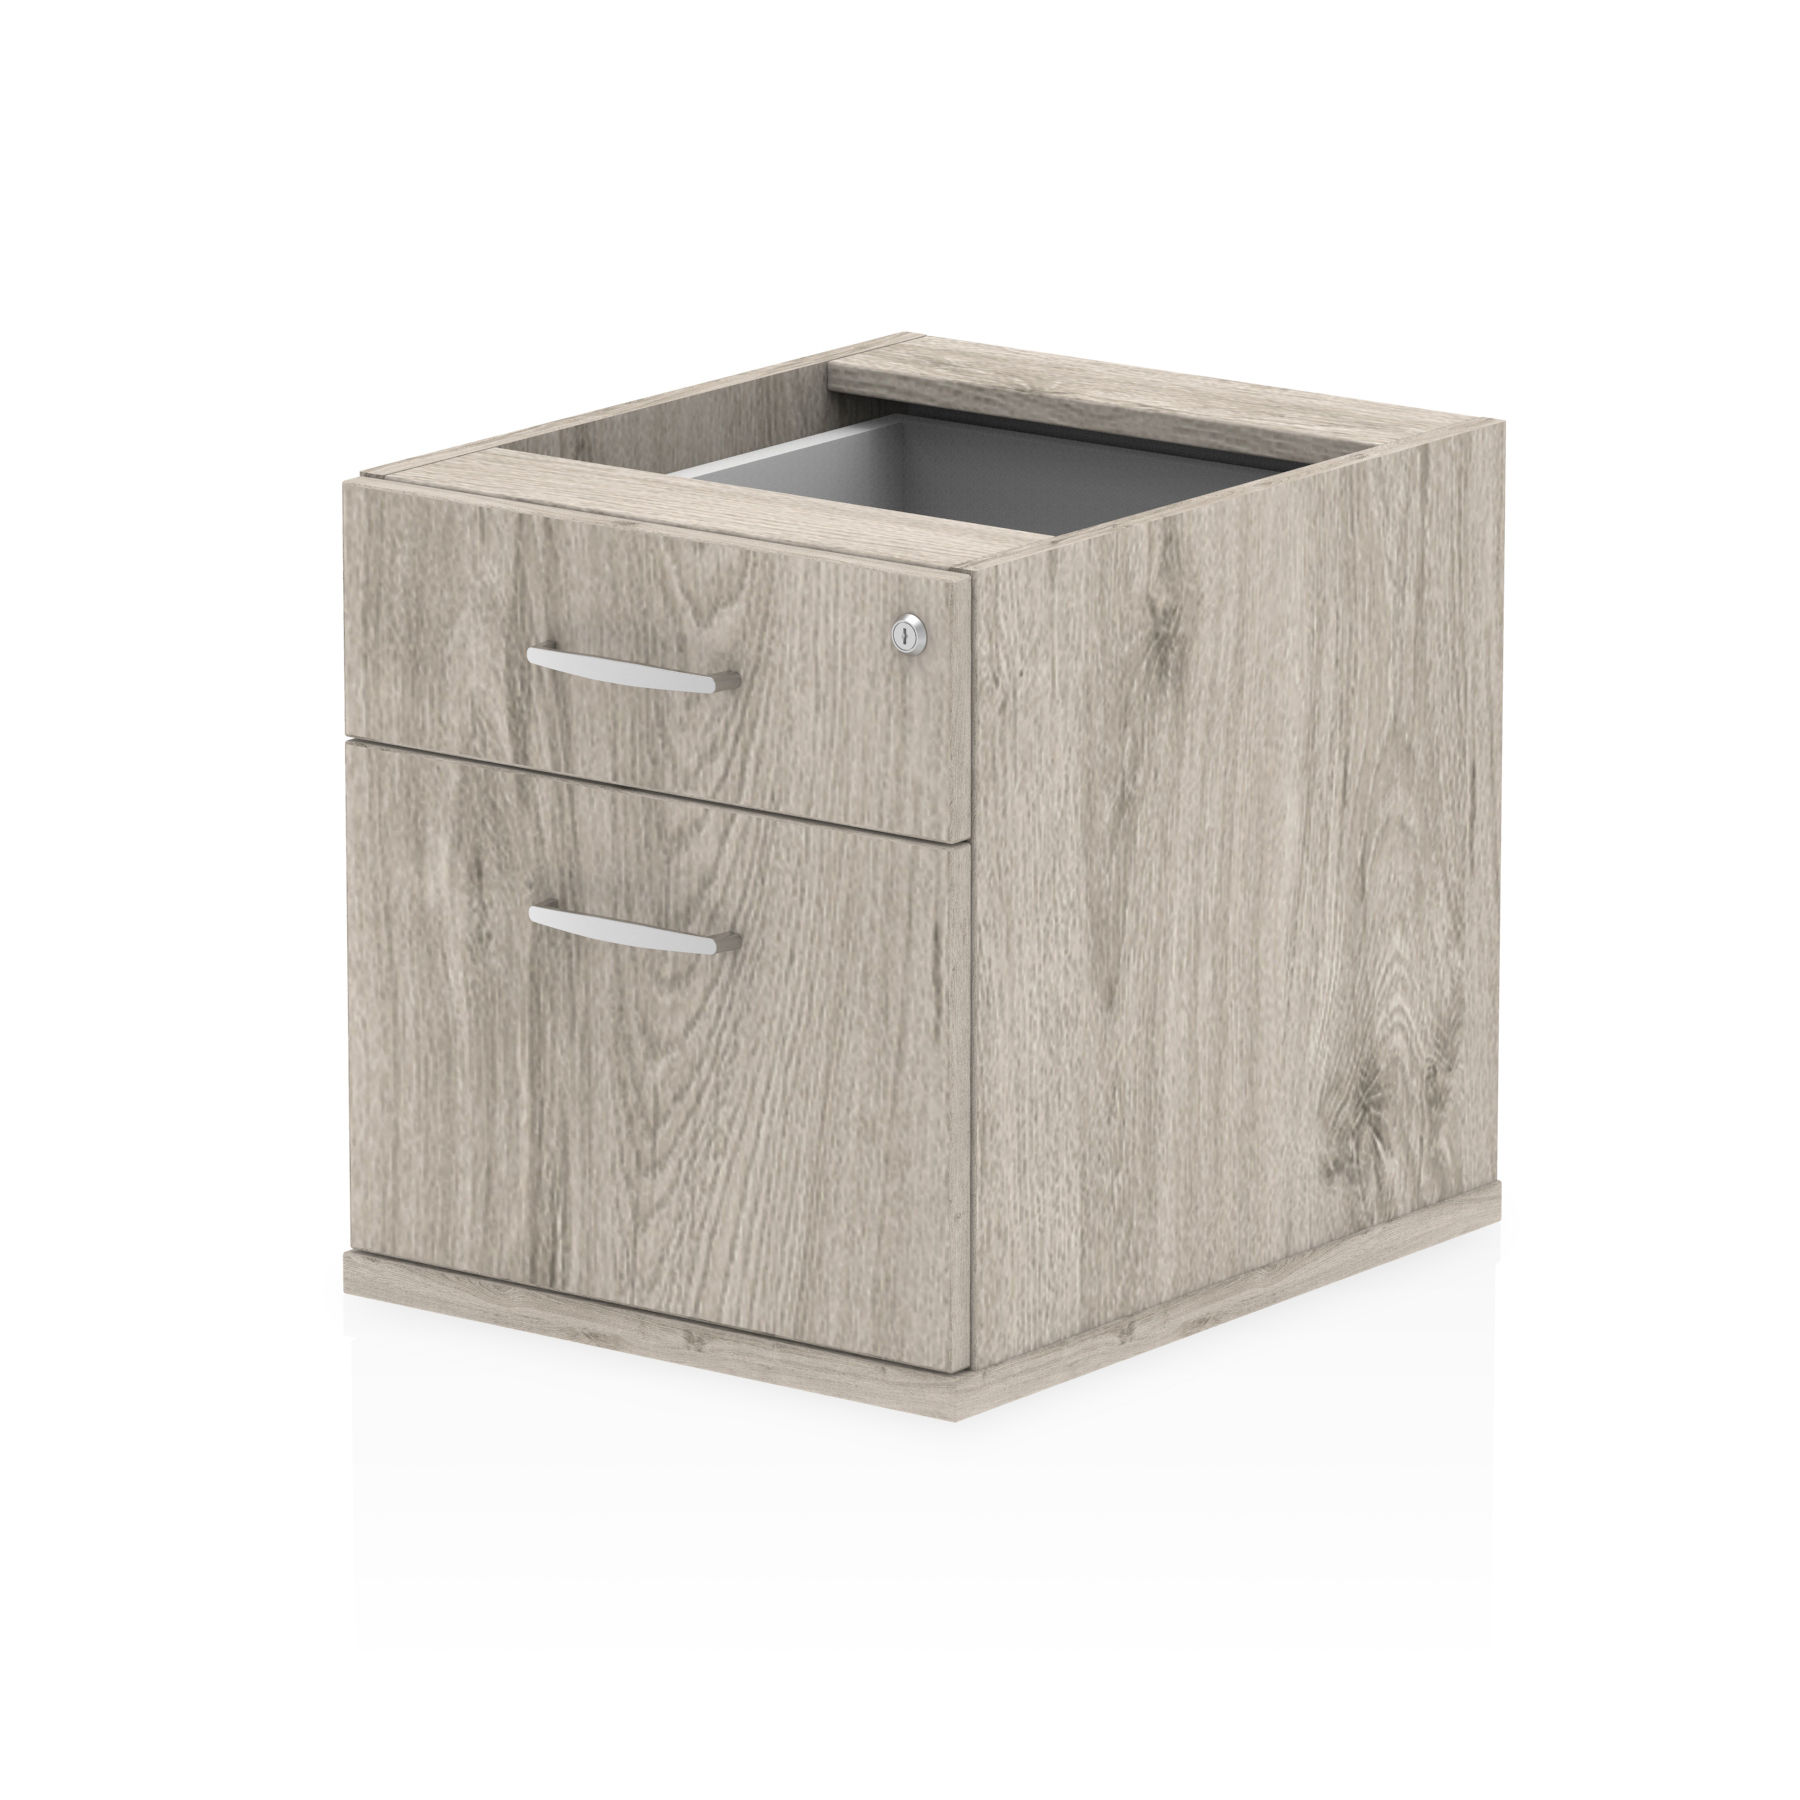 Pedestals Trexus 2 Drawer Fixed Pedestal 426x463x480mm Grey Oak Ref I003219